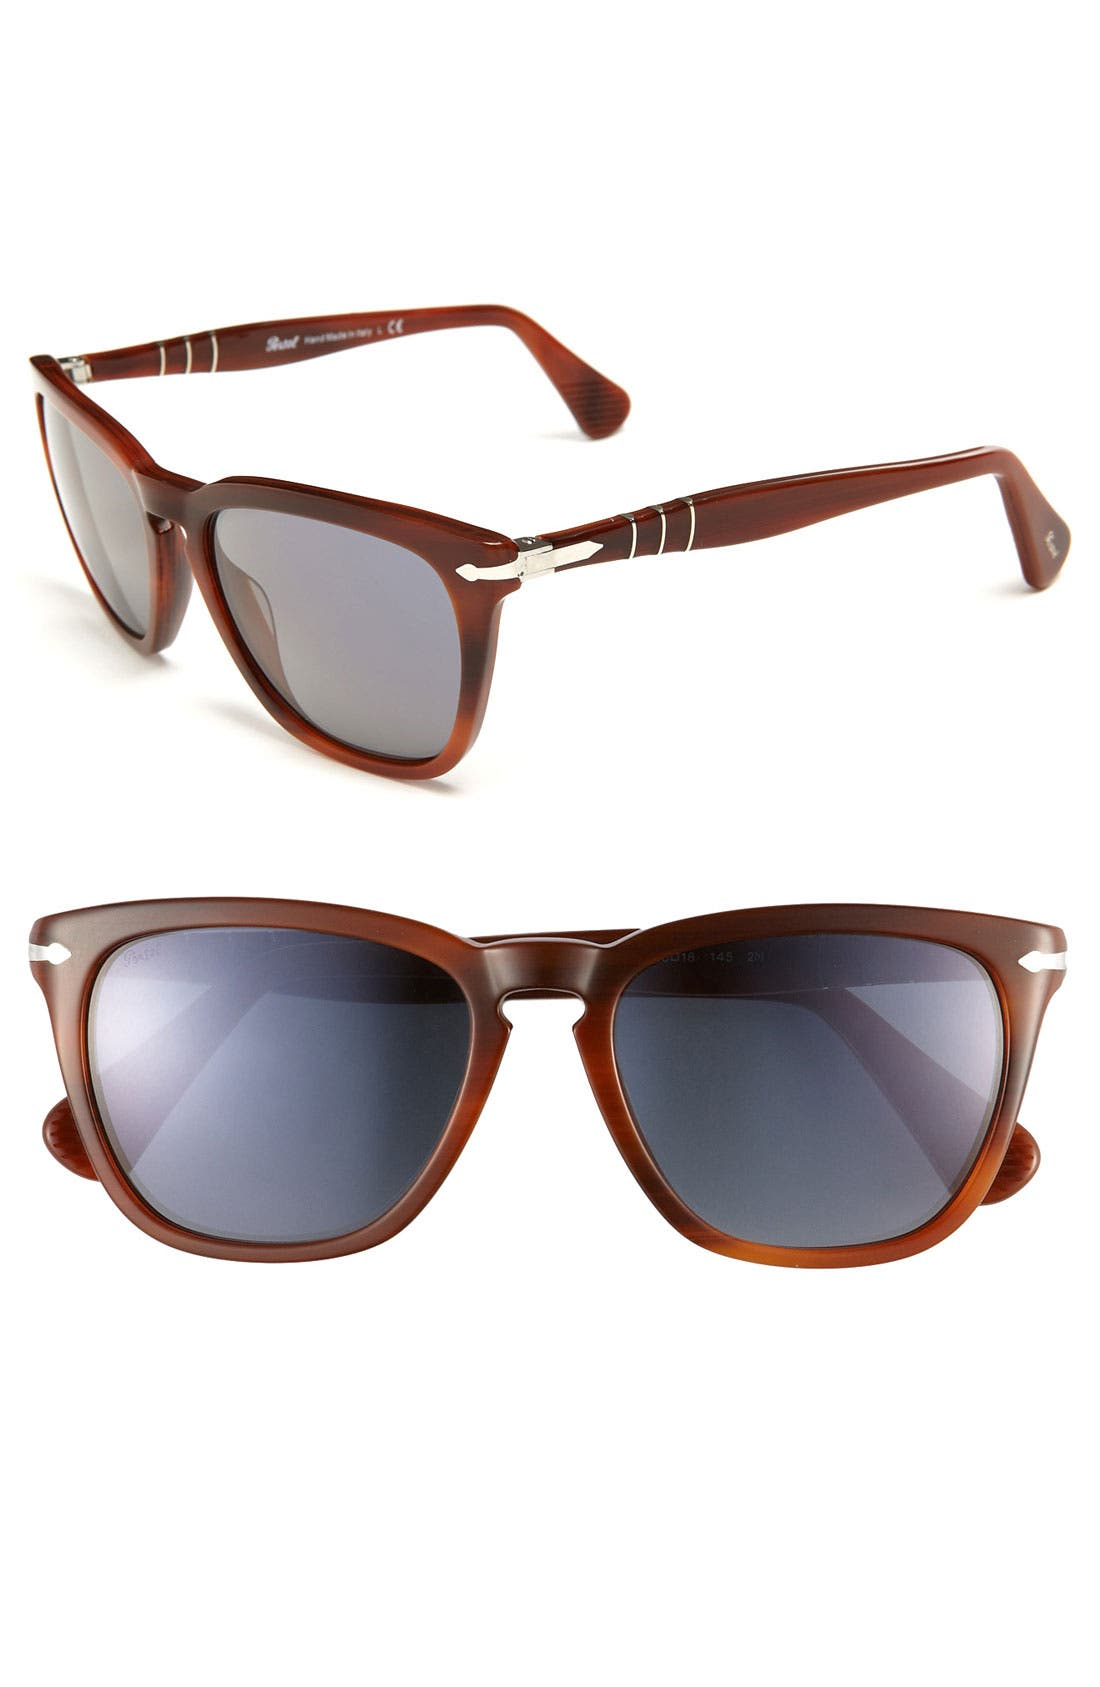 Main Image - Persol 'Capri' 55mm Sunglasses